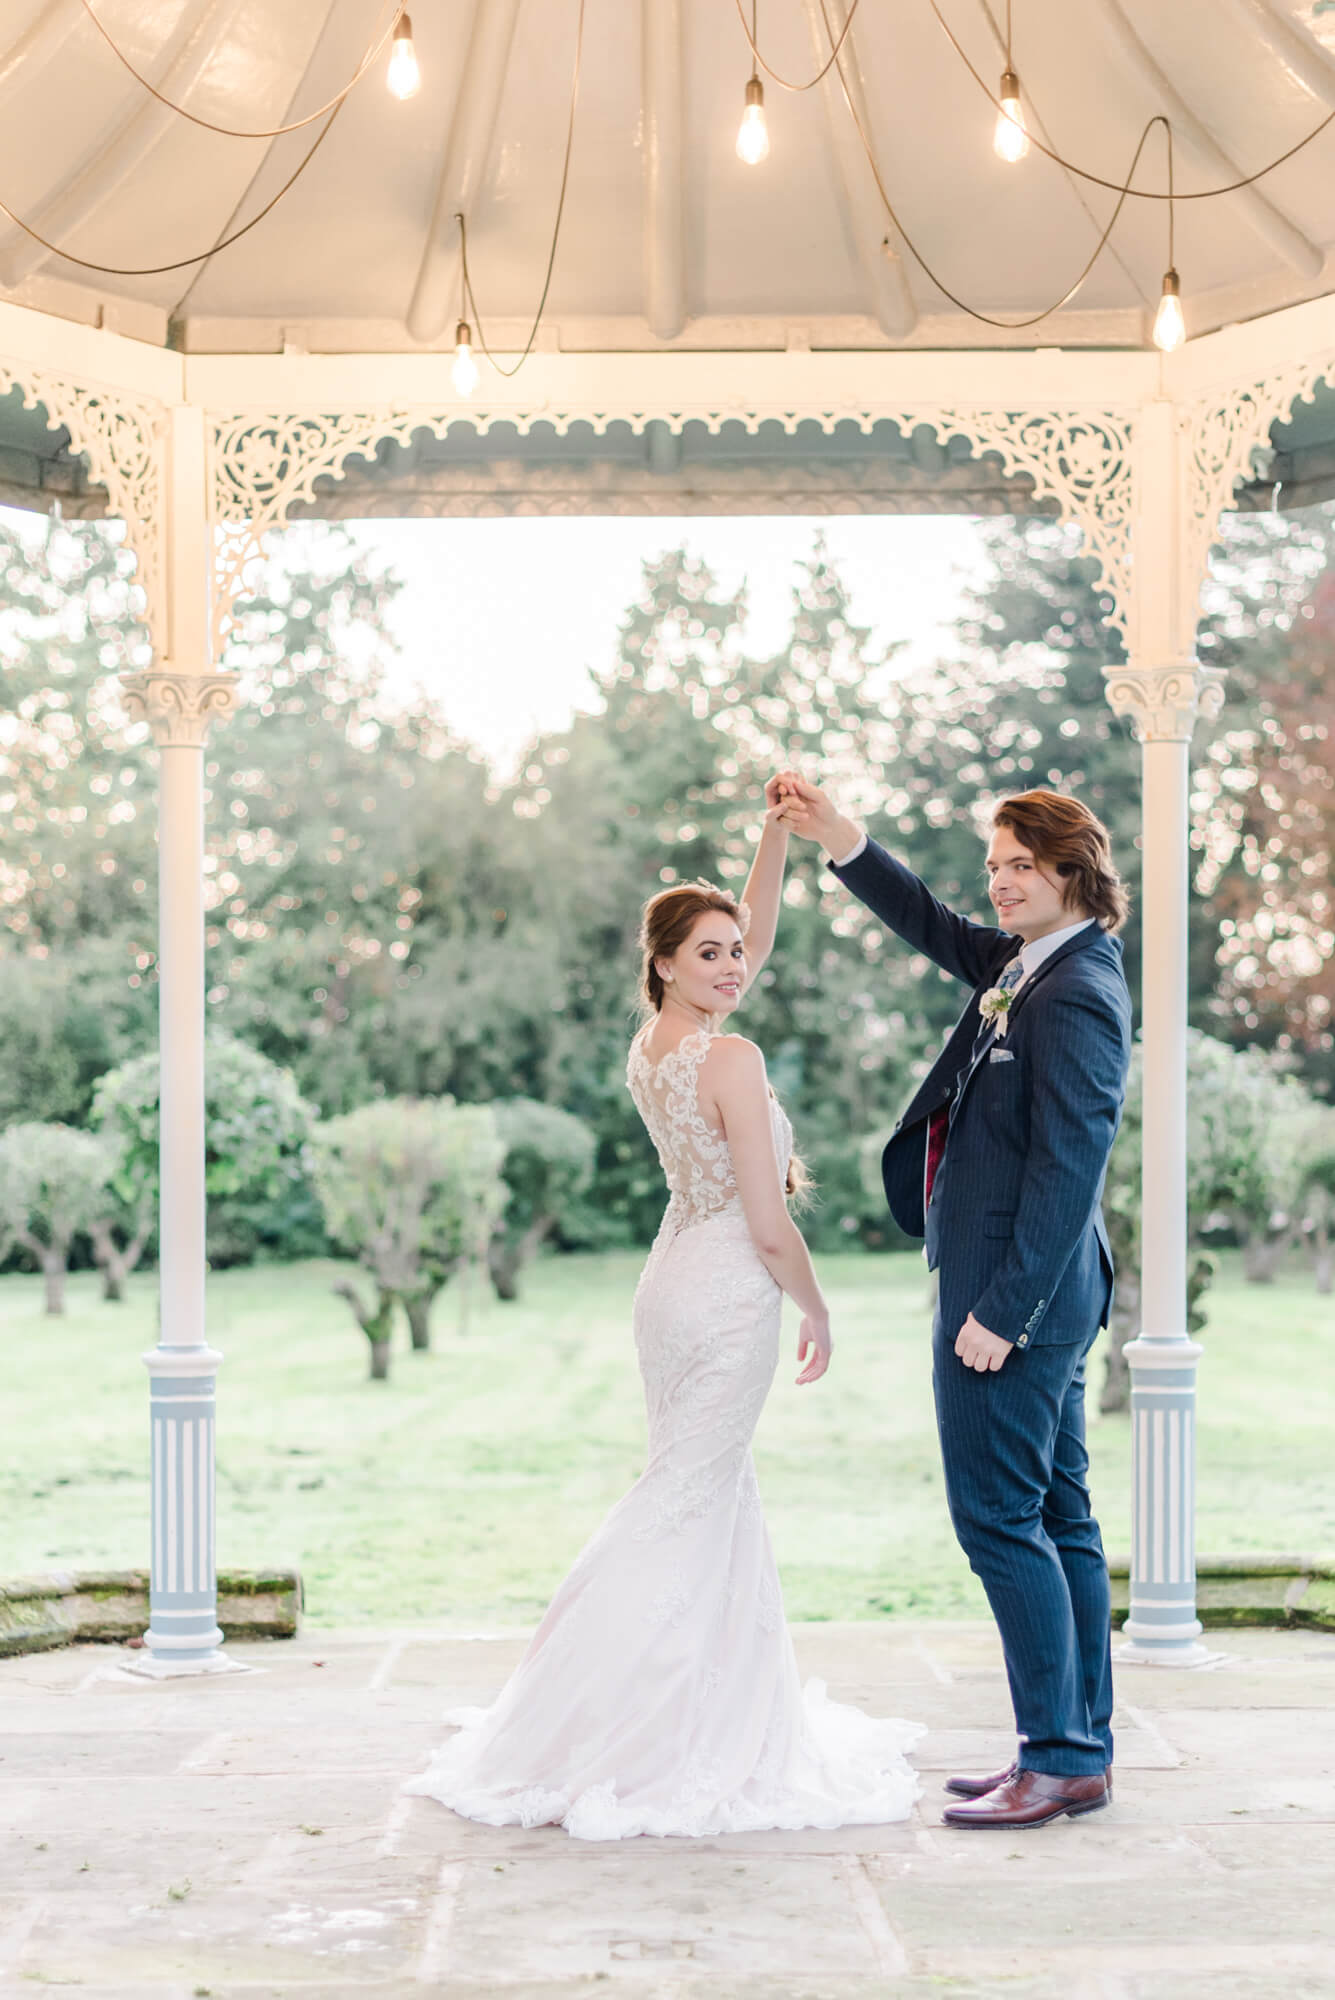 Practical tips on how to choose your wedding photographer. In Photo: bride and groom dancing under a gazebo at Thicket Priory Yorkshire. bride wearing an Ellis mermaid style wedding dress from Christian Alexander bridal boutique and grom wearing a dark blue suit ensemble from Baker's Tailoring. Shot at Thicket Priory by fine art destination wedding photographer Cristina Ilao | www.cristinailao.com